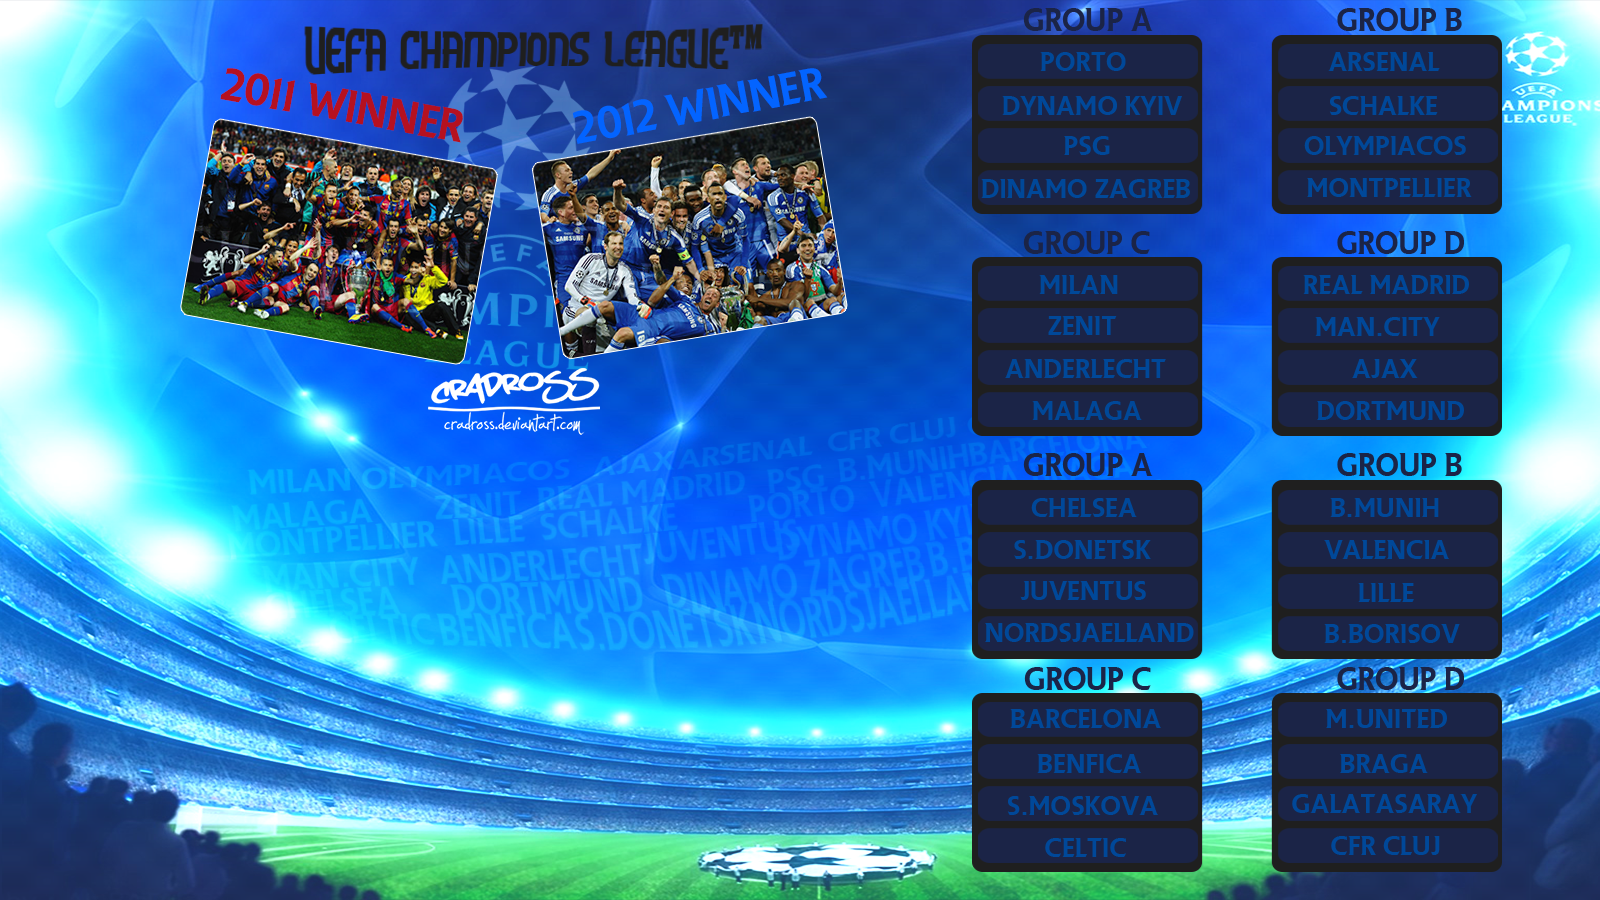 UEFA Champions League Group fixture by CradRoss on deviantART